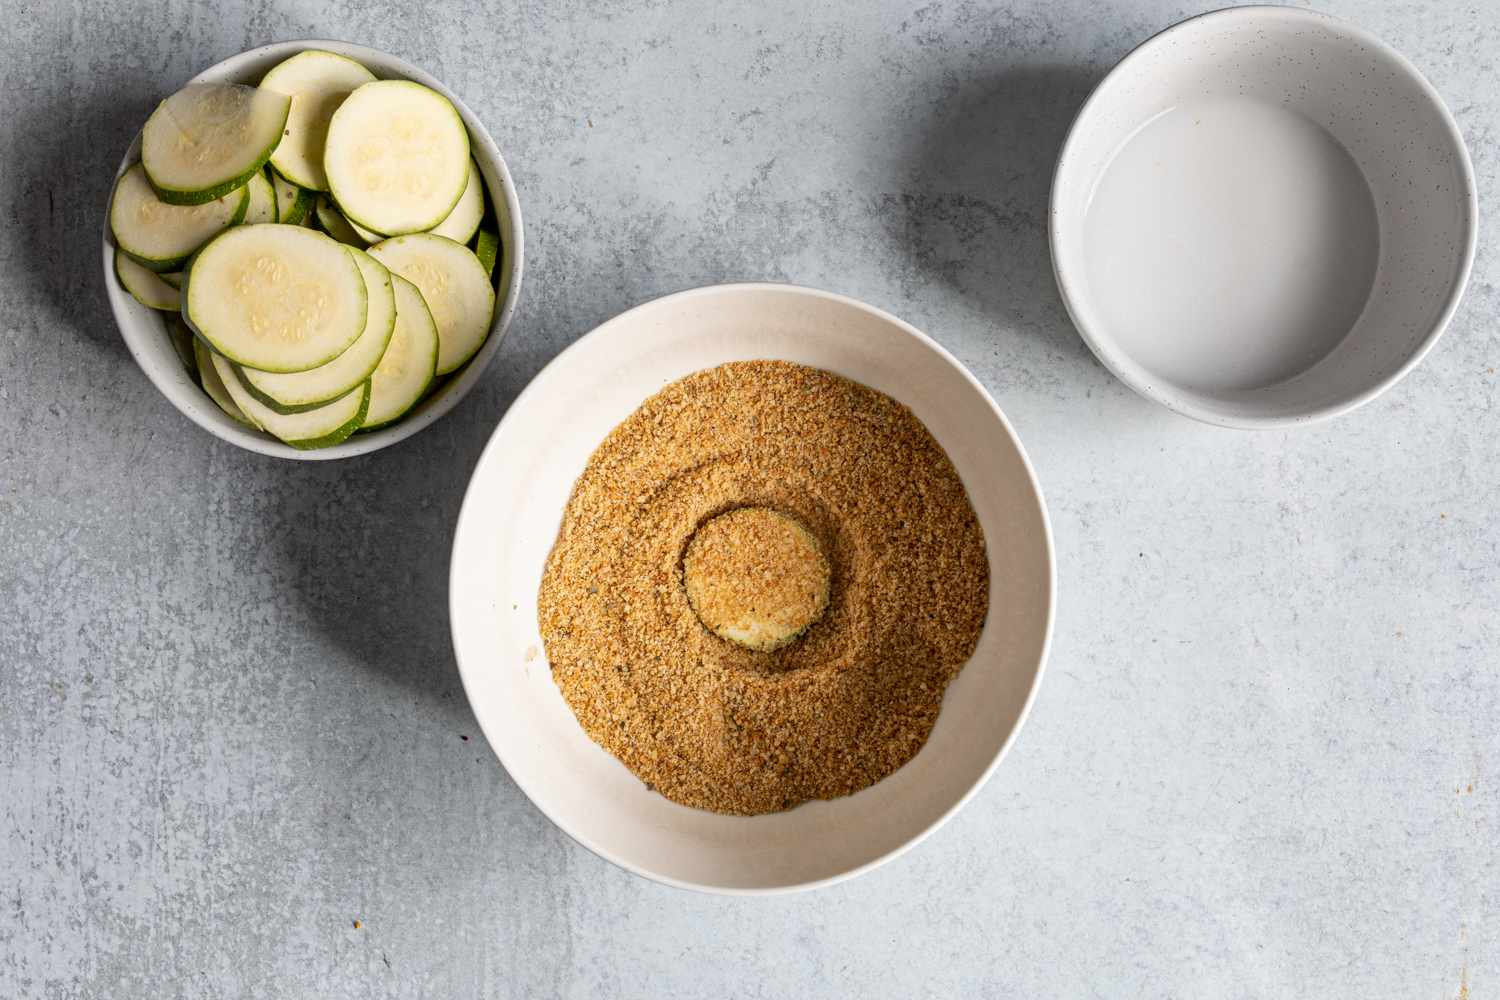 zucchini piece dipped into breadcrumbs